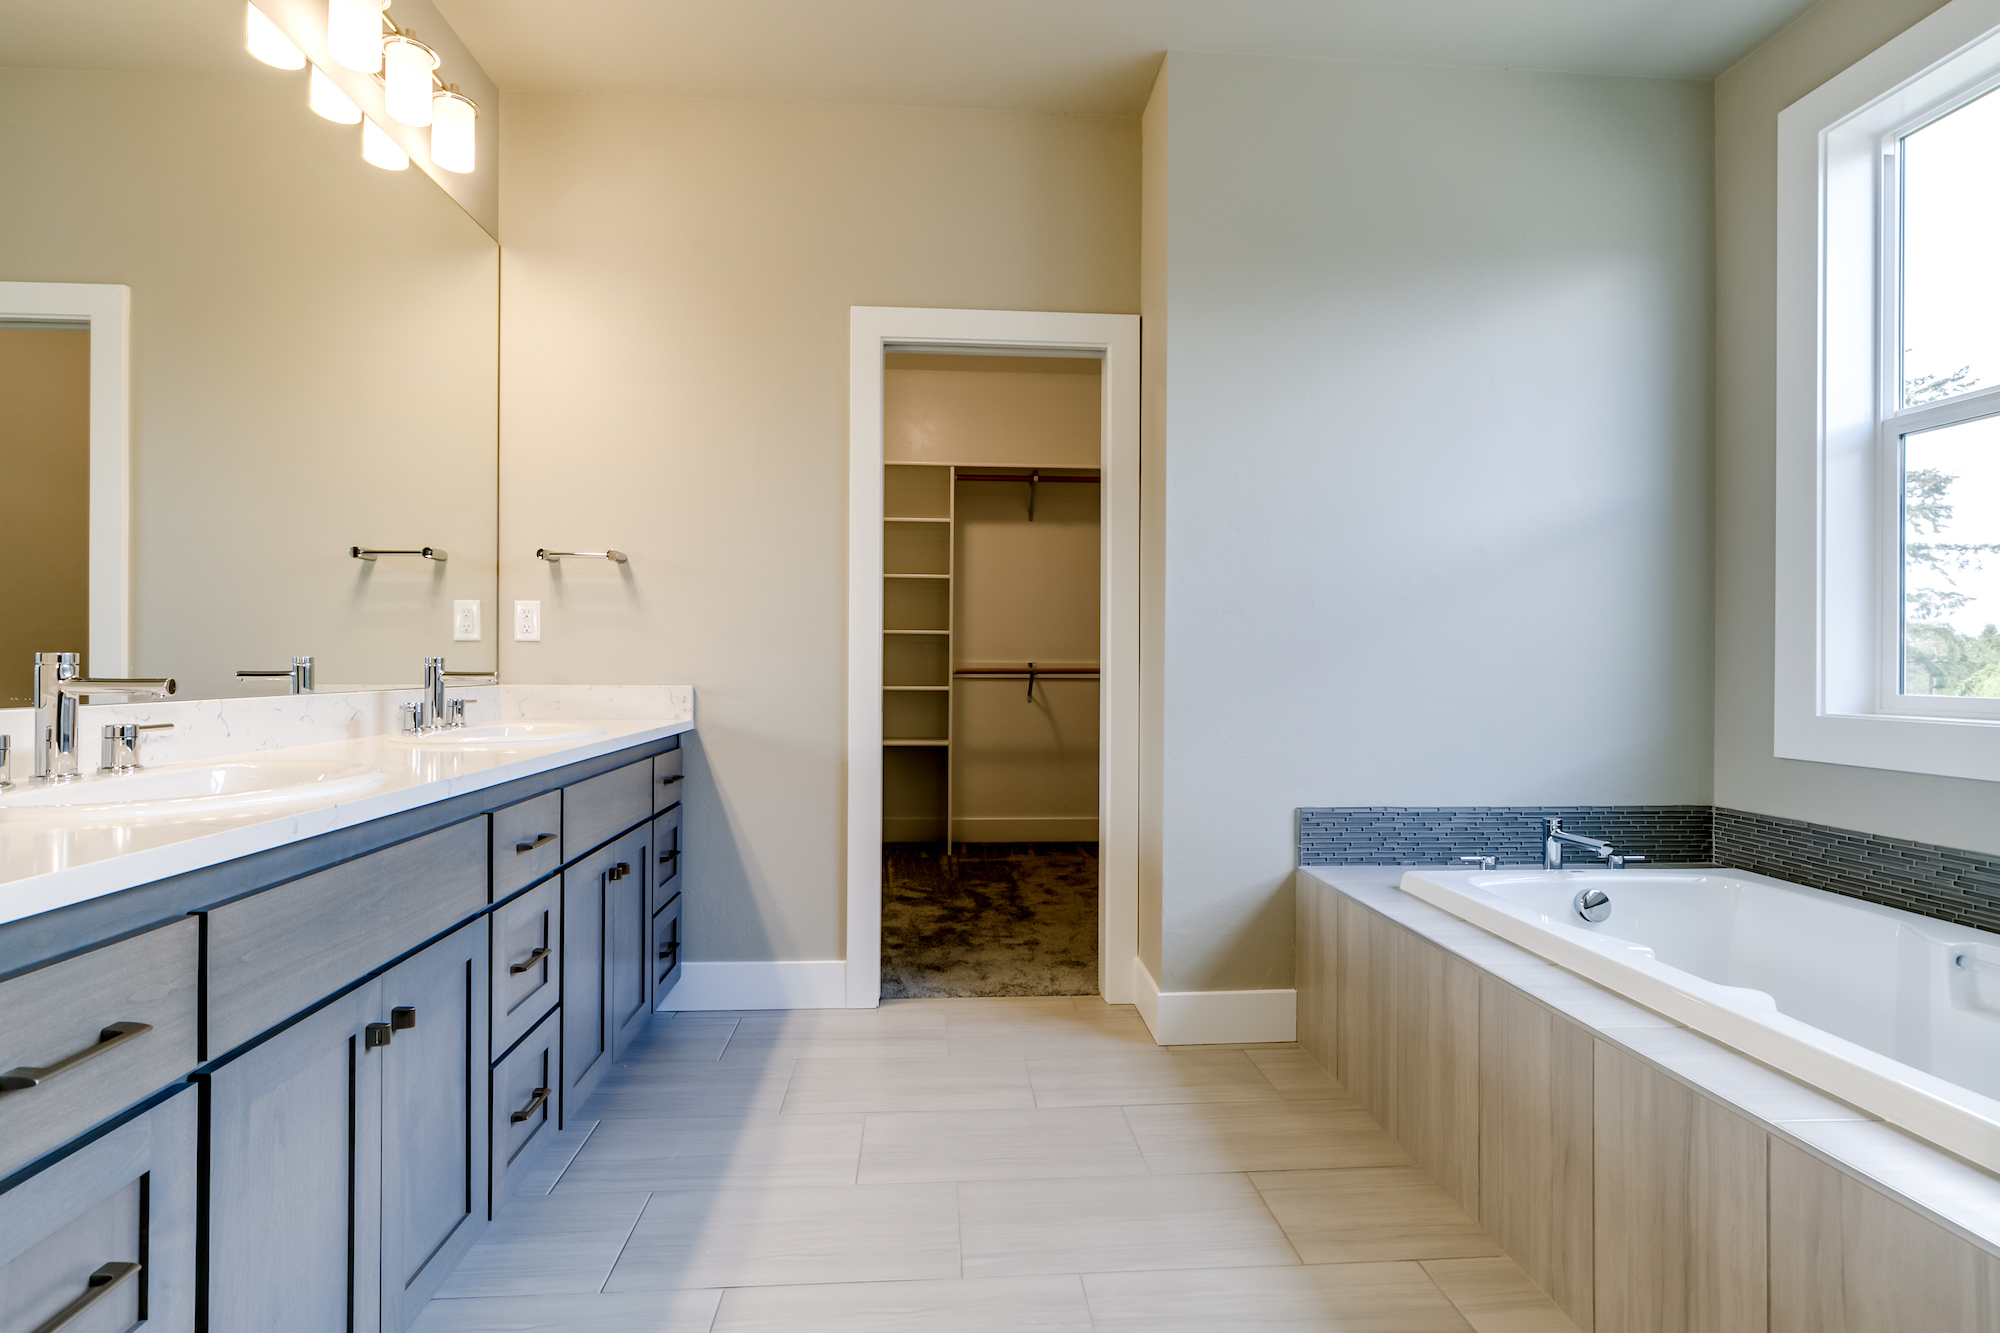 This master bathroom includes a soaker tub, 2 headed custom shower and walk in closet.